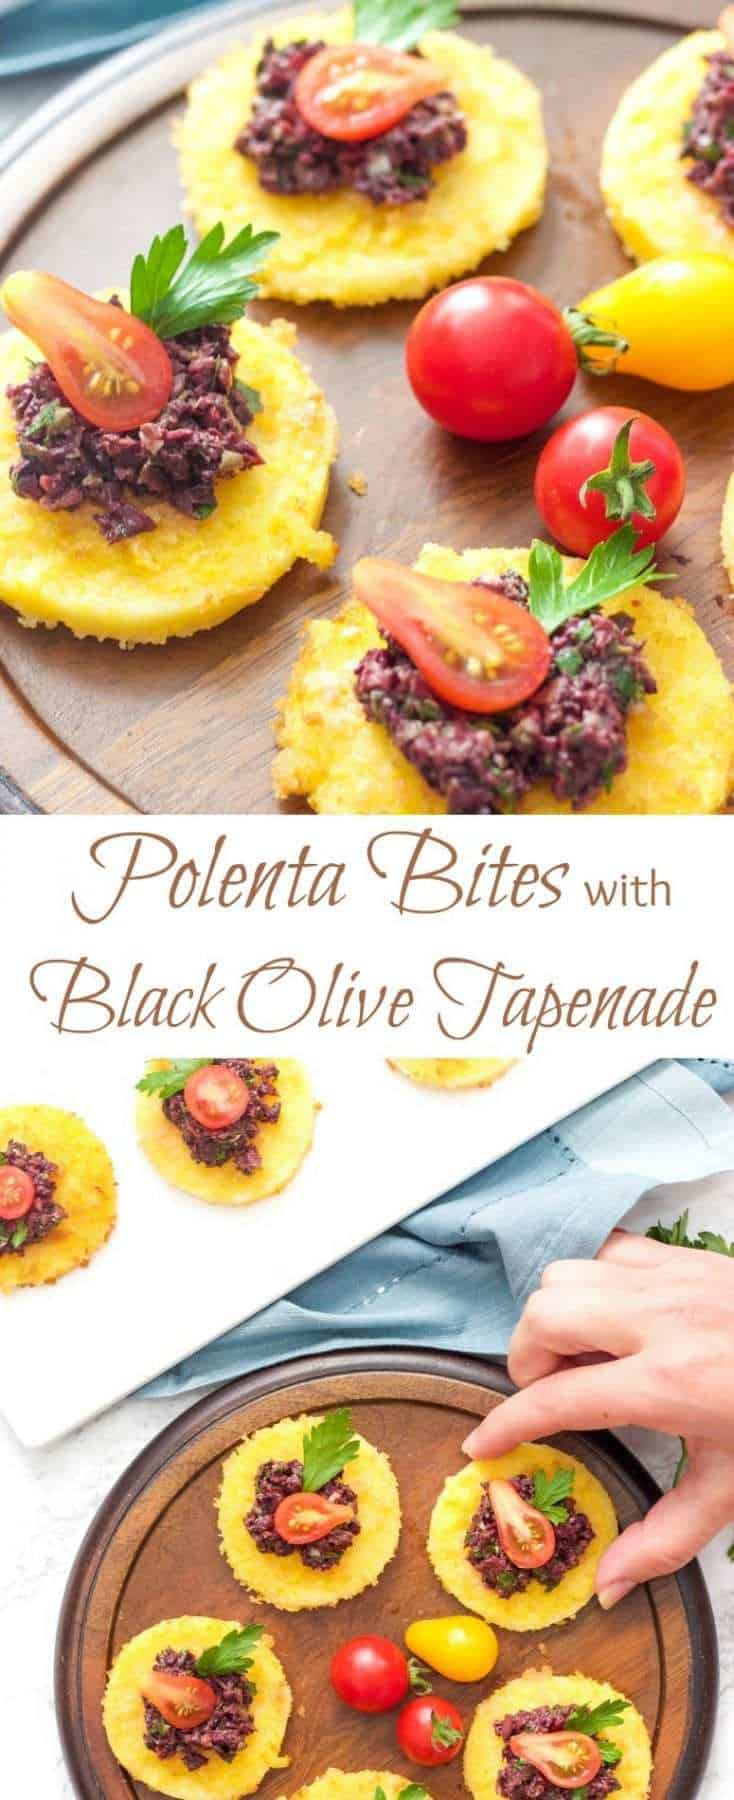 Crispy polenta bites topped with rich and flavourful black olive tapenade create a simple yet decadent appetizer that always go fast.